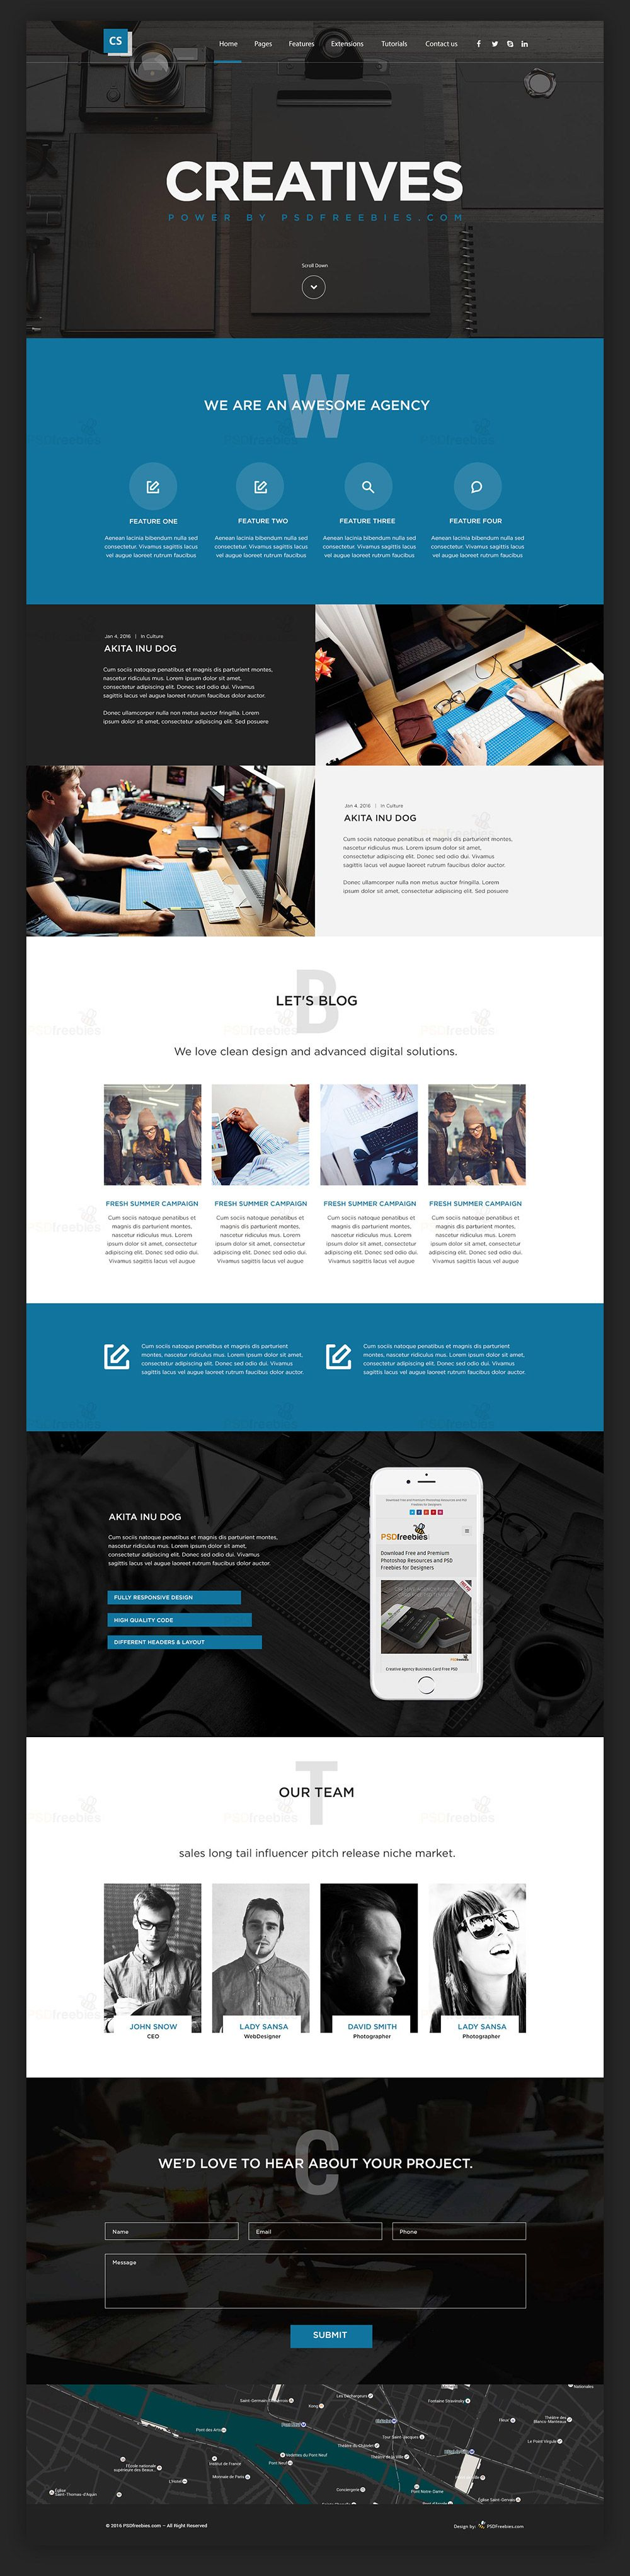 Creative digital agency website template free psd template and creative digital agencies website templates free psd set pronofoot35fo Gallery